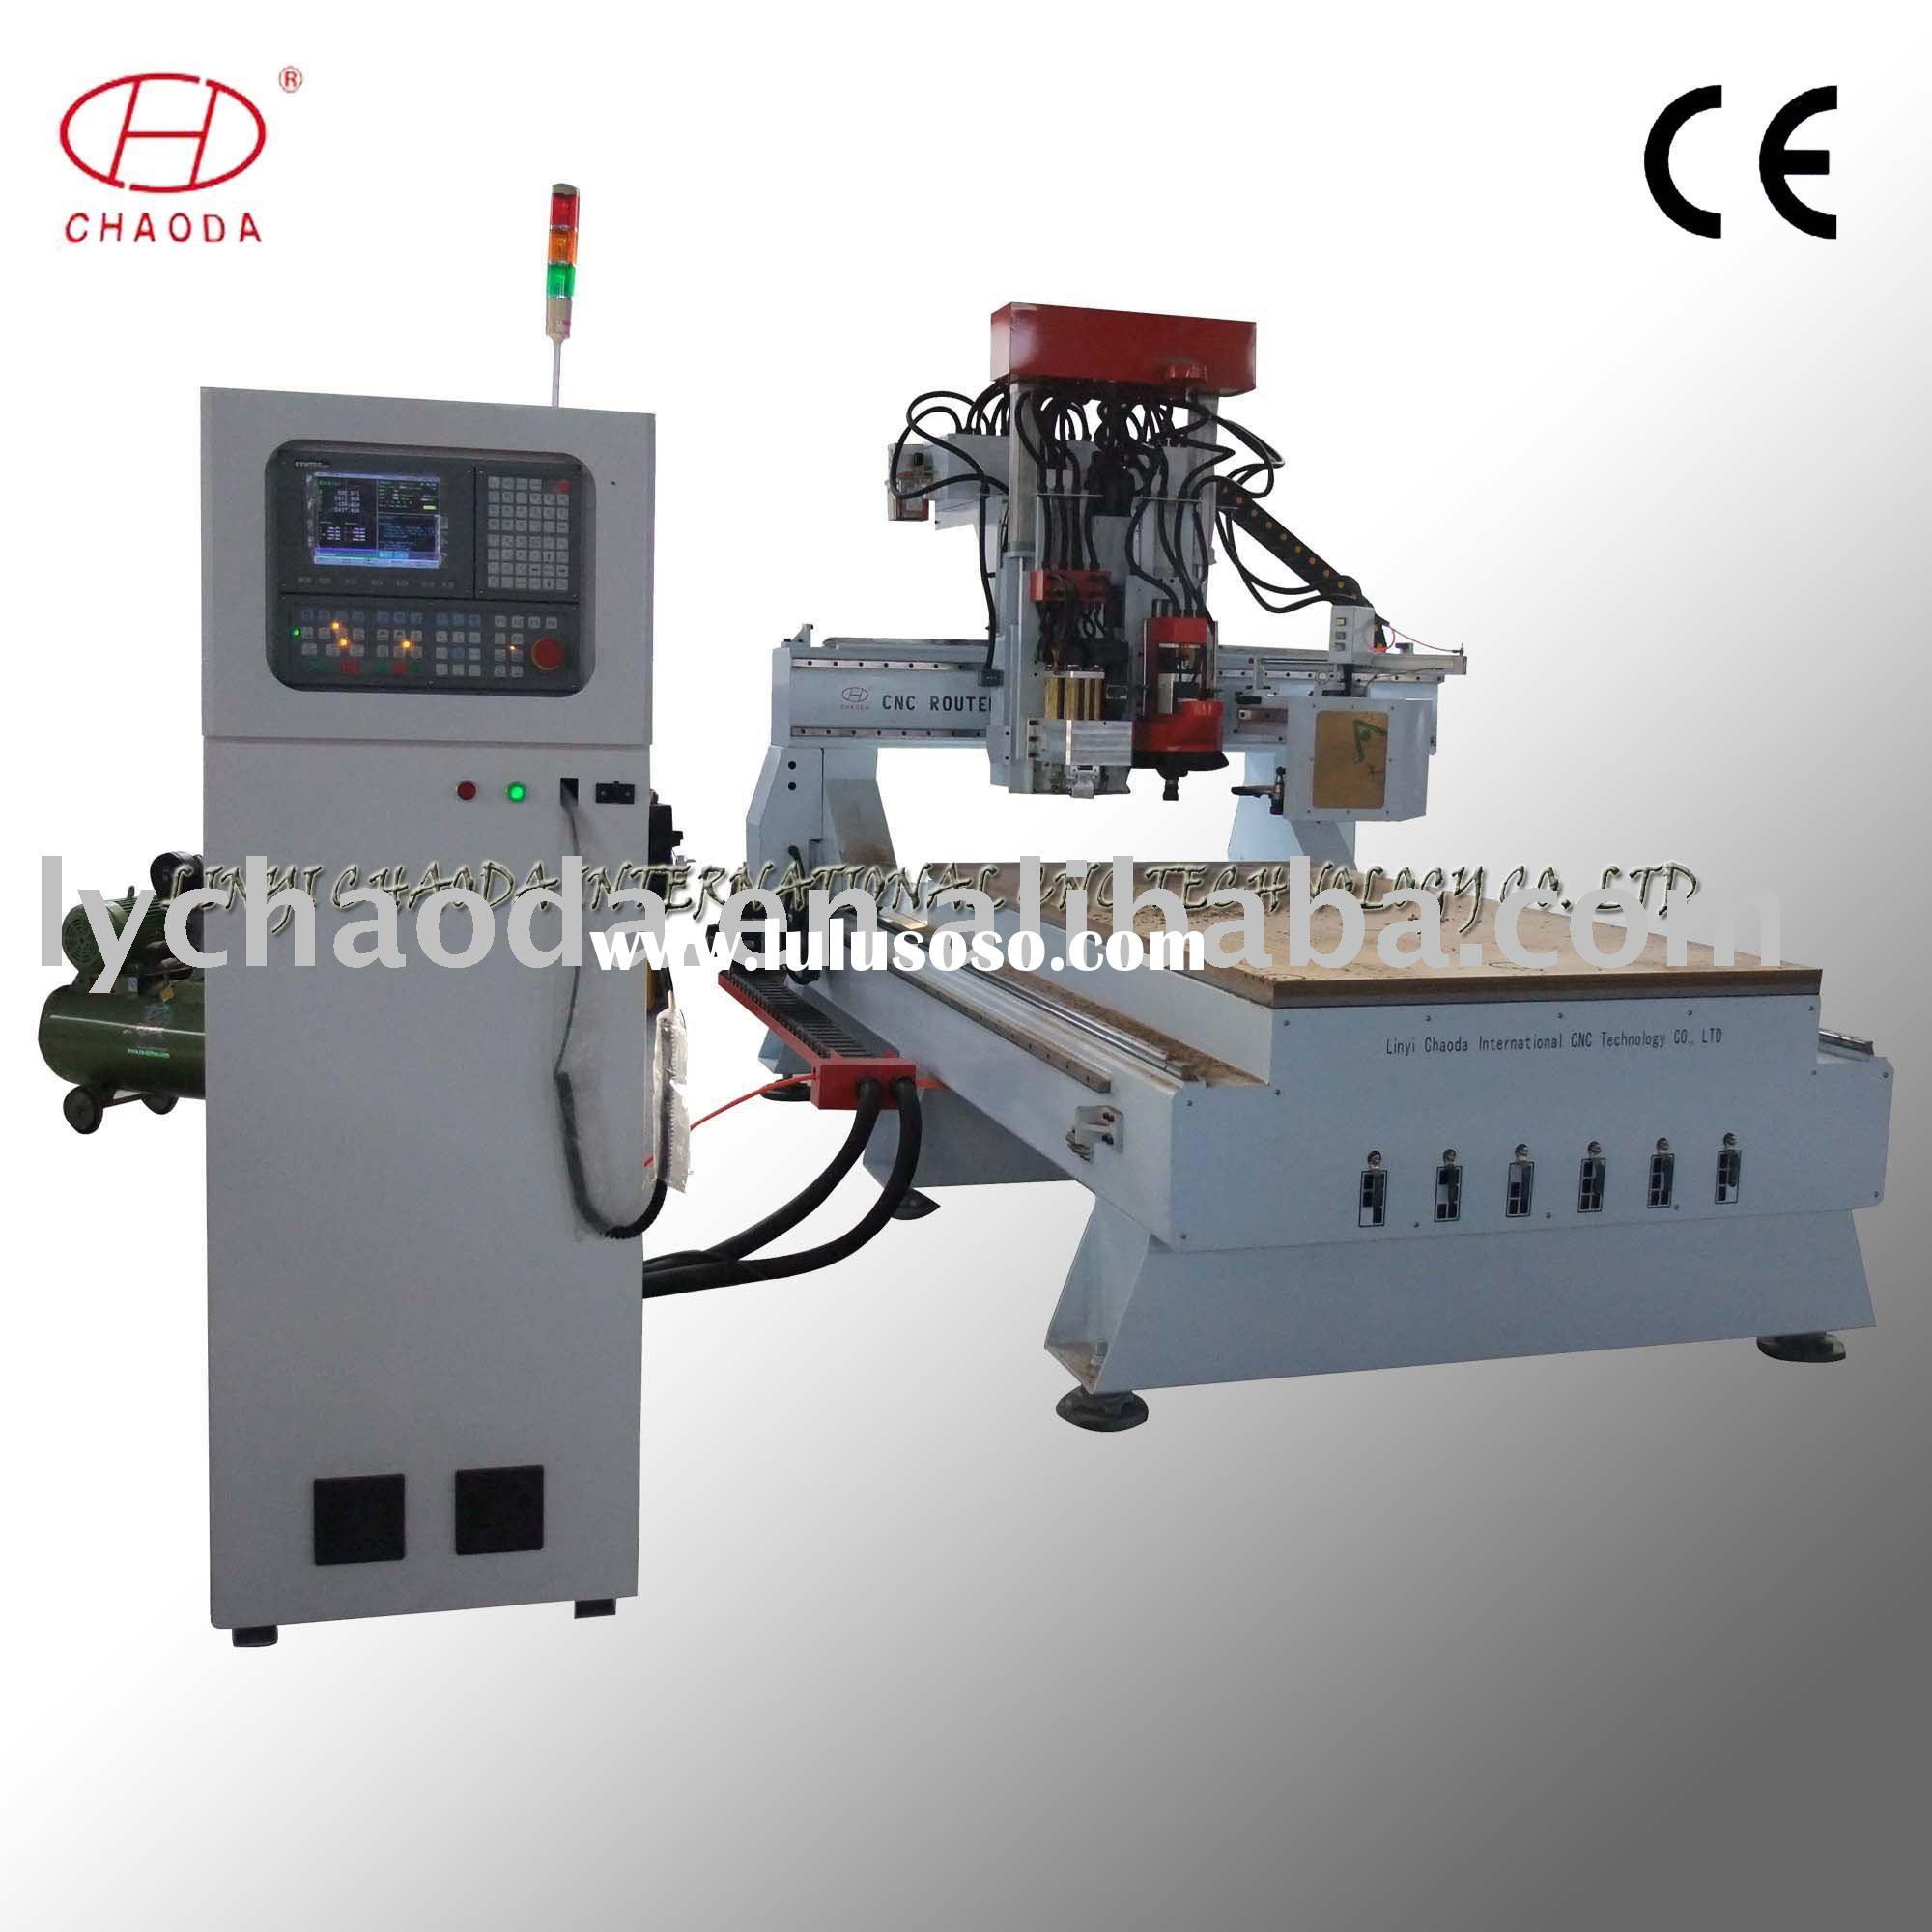 woodworking machinery in ahmedabad | European Woodworking Plans